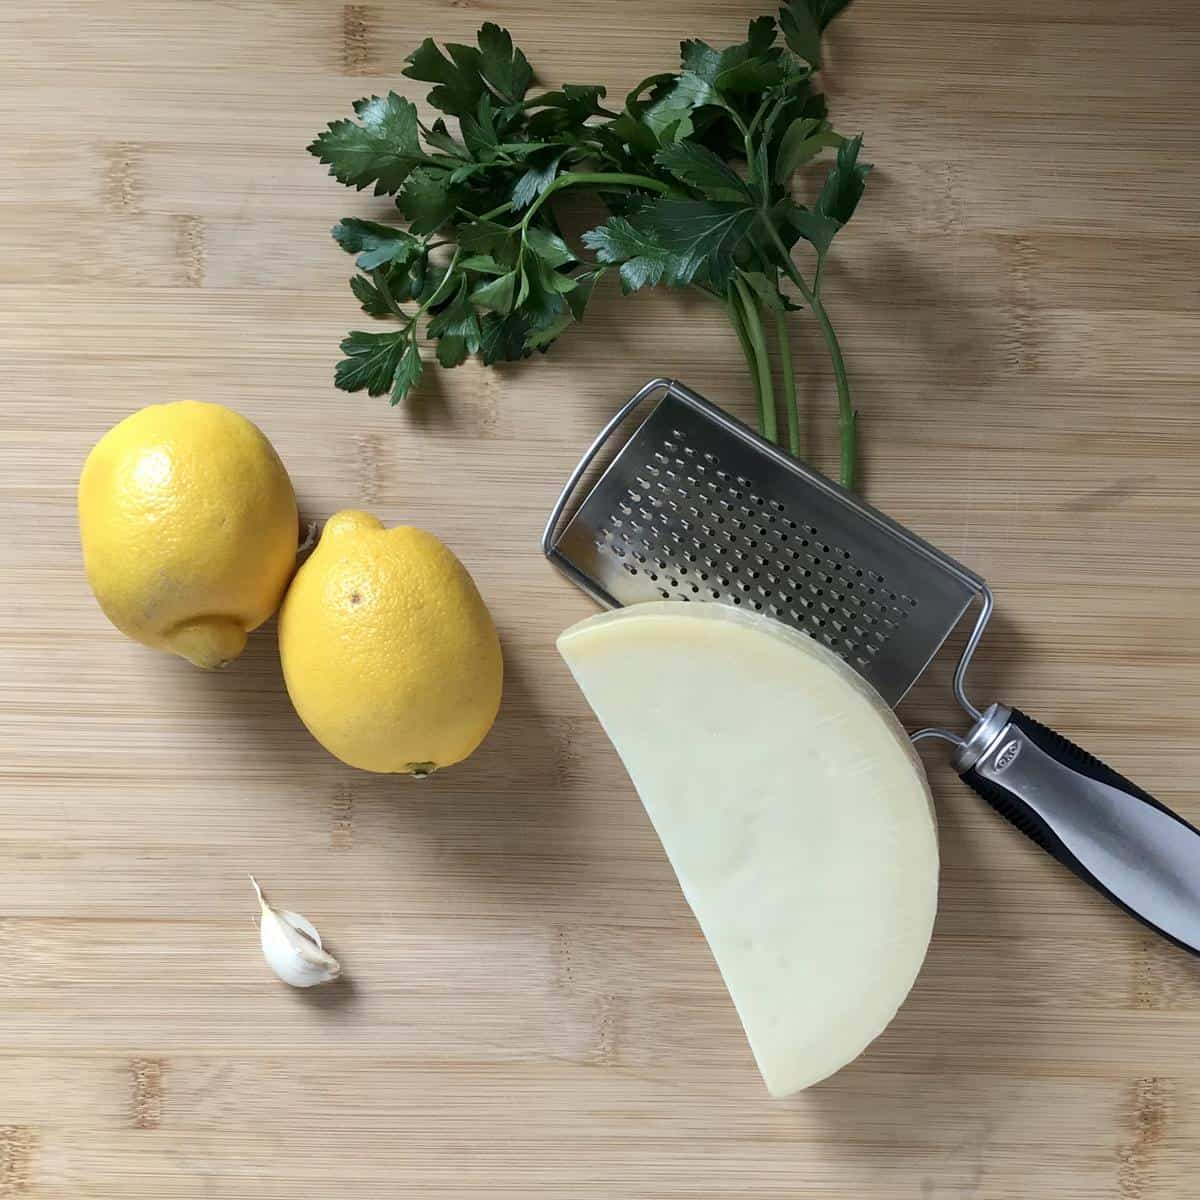 Garlic, lemons, parsley and cheese on a wooden board.